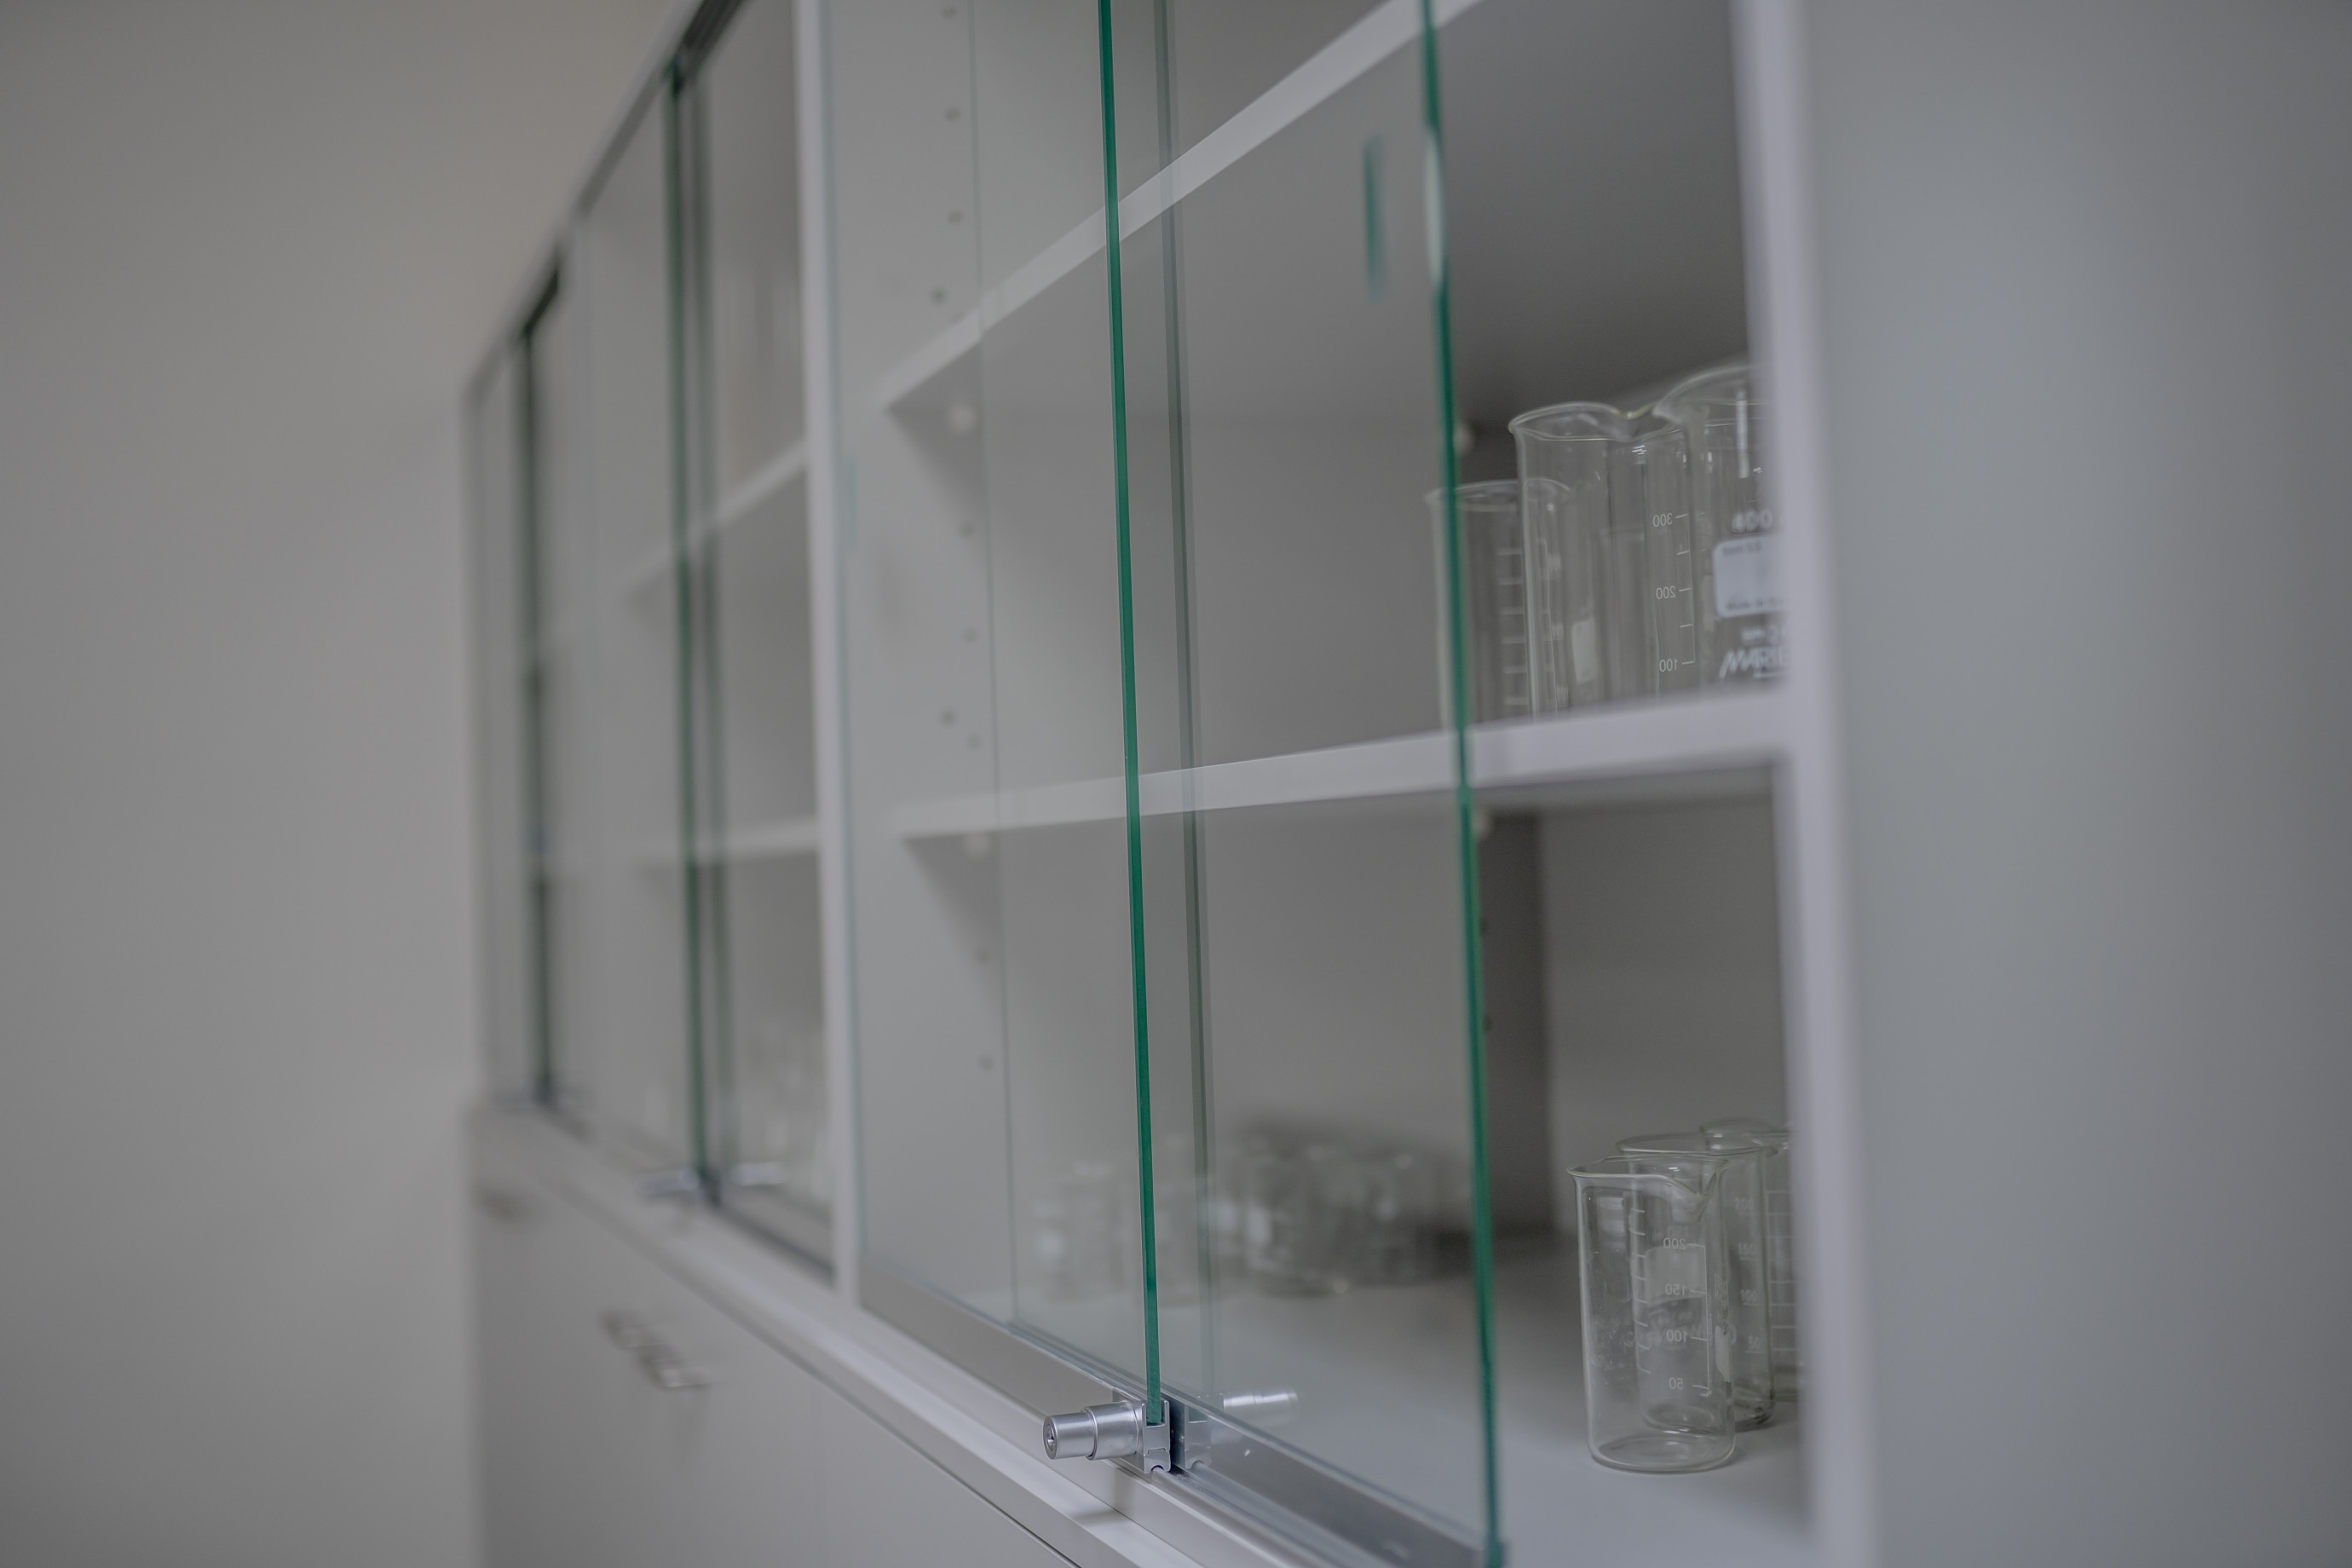 Storage cabinet with safety glass